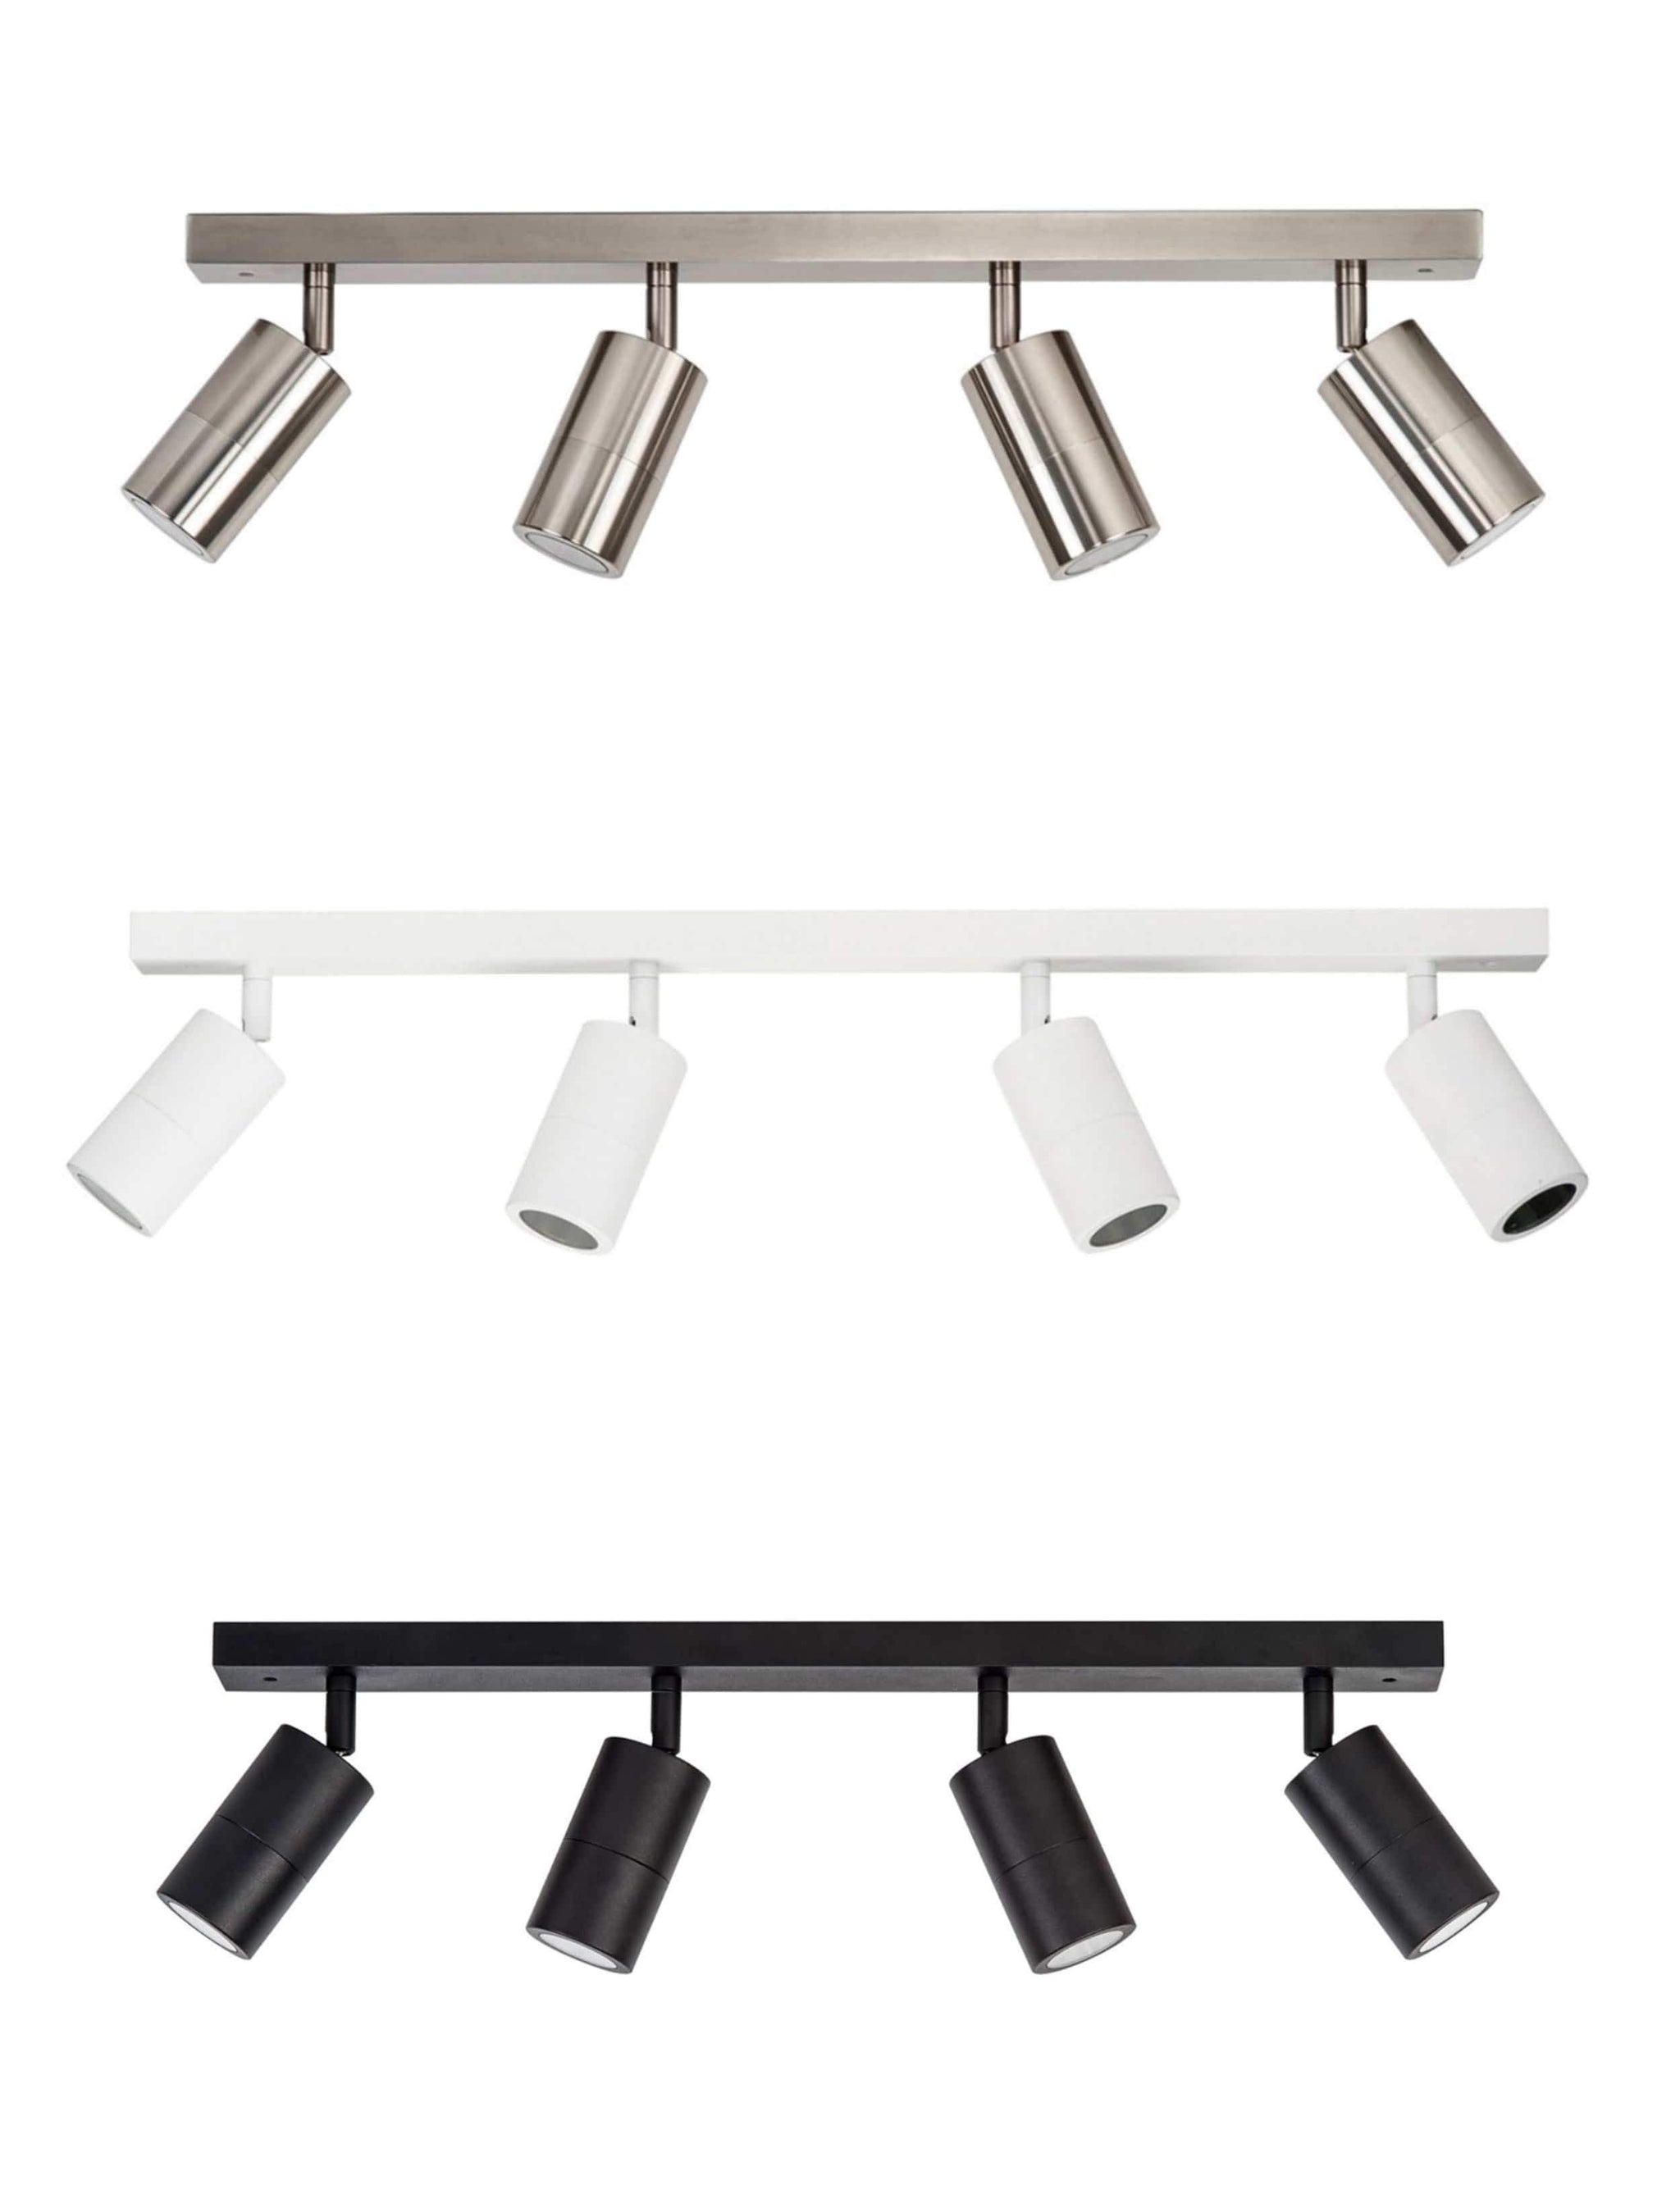 Bar & Spot Tivah 4 Light Bar Lighting Stores